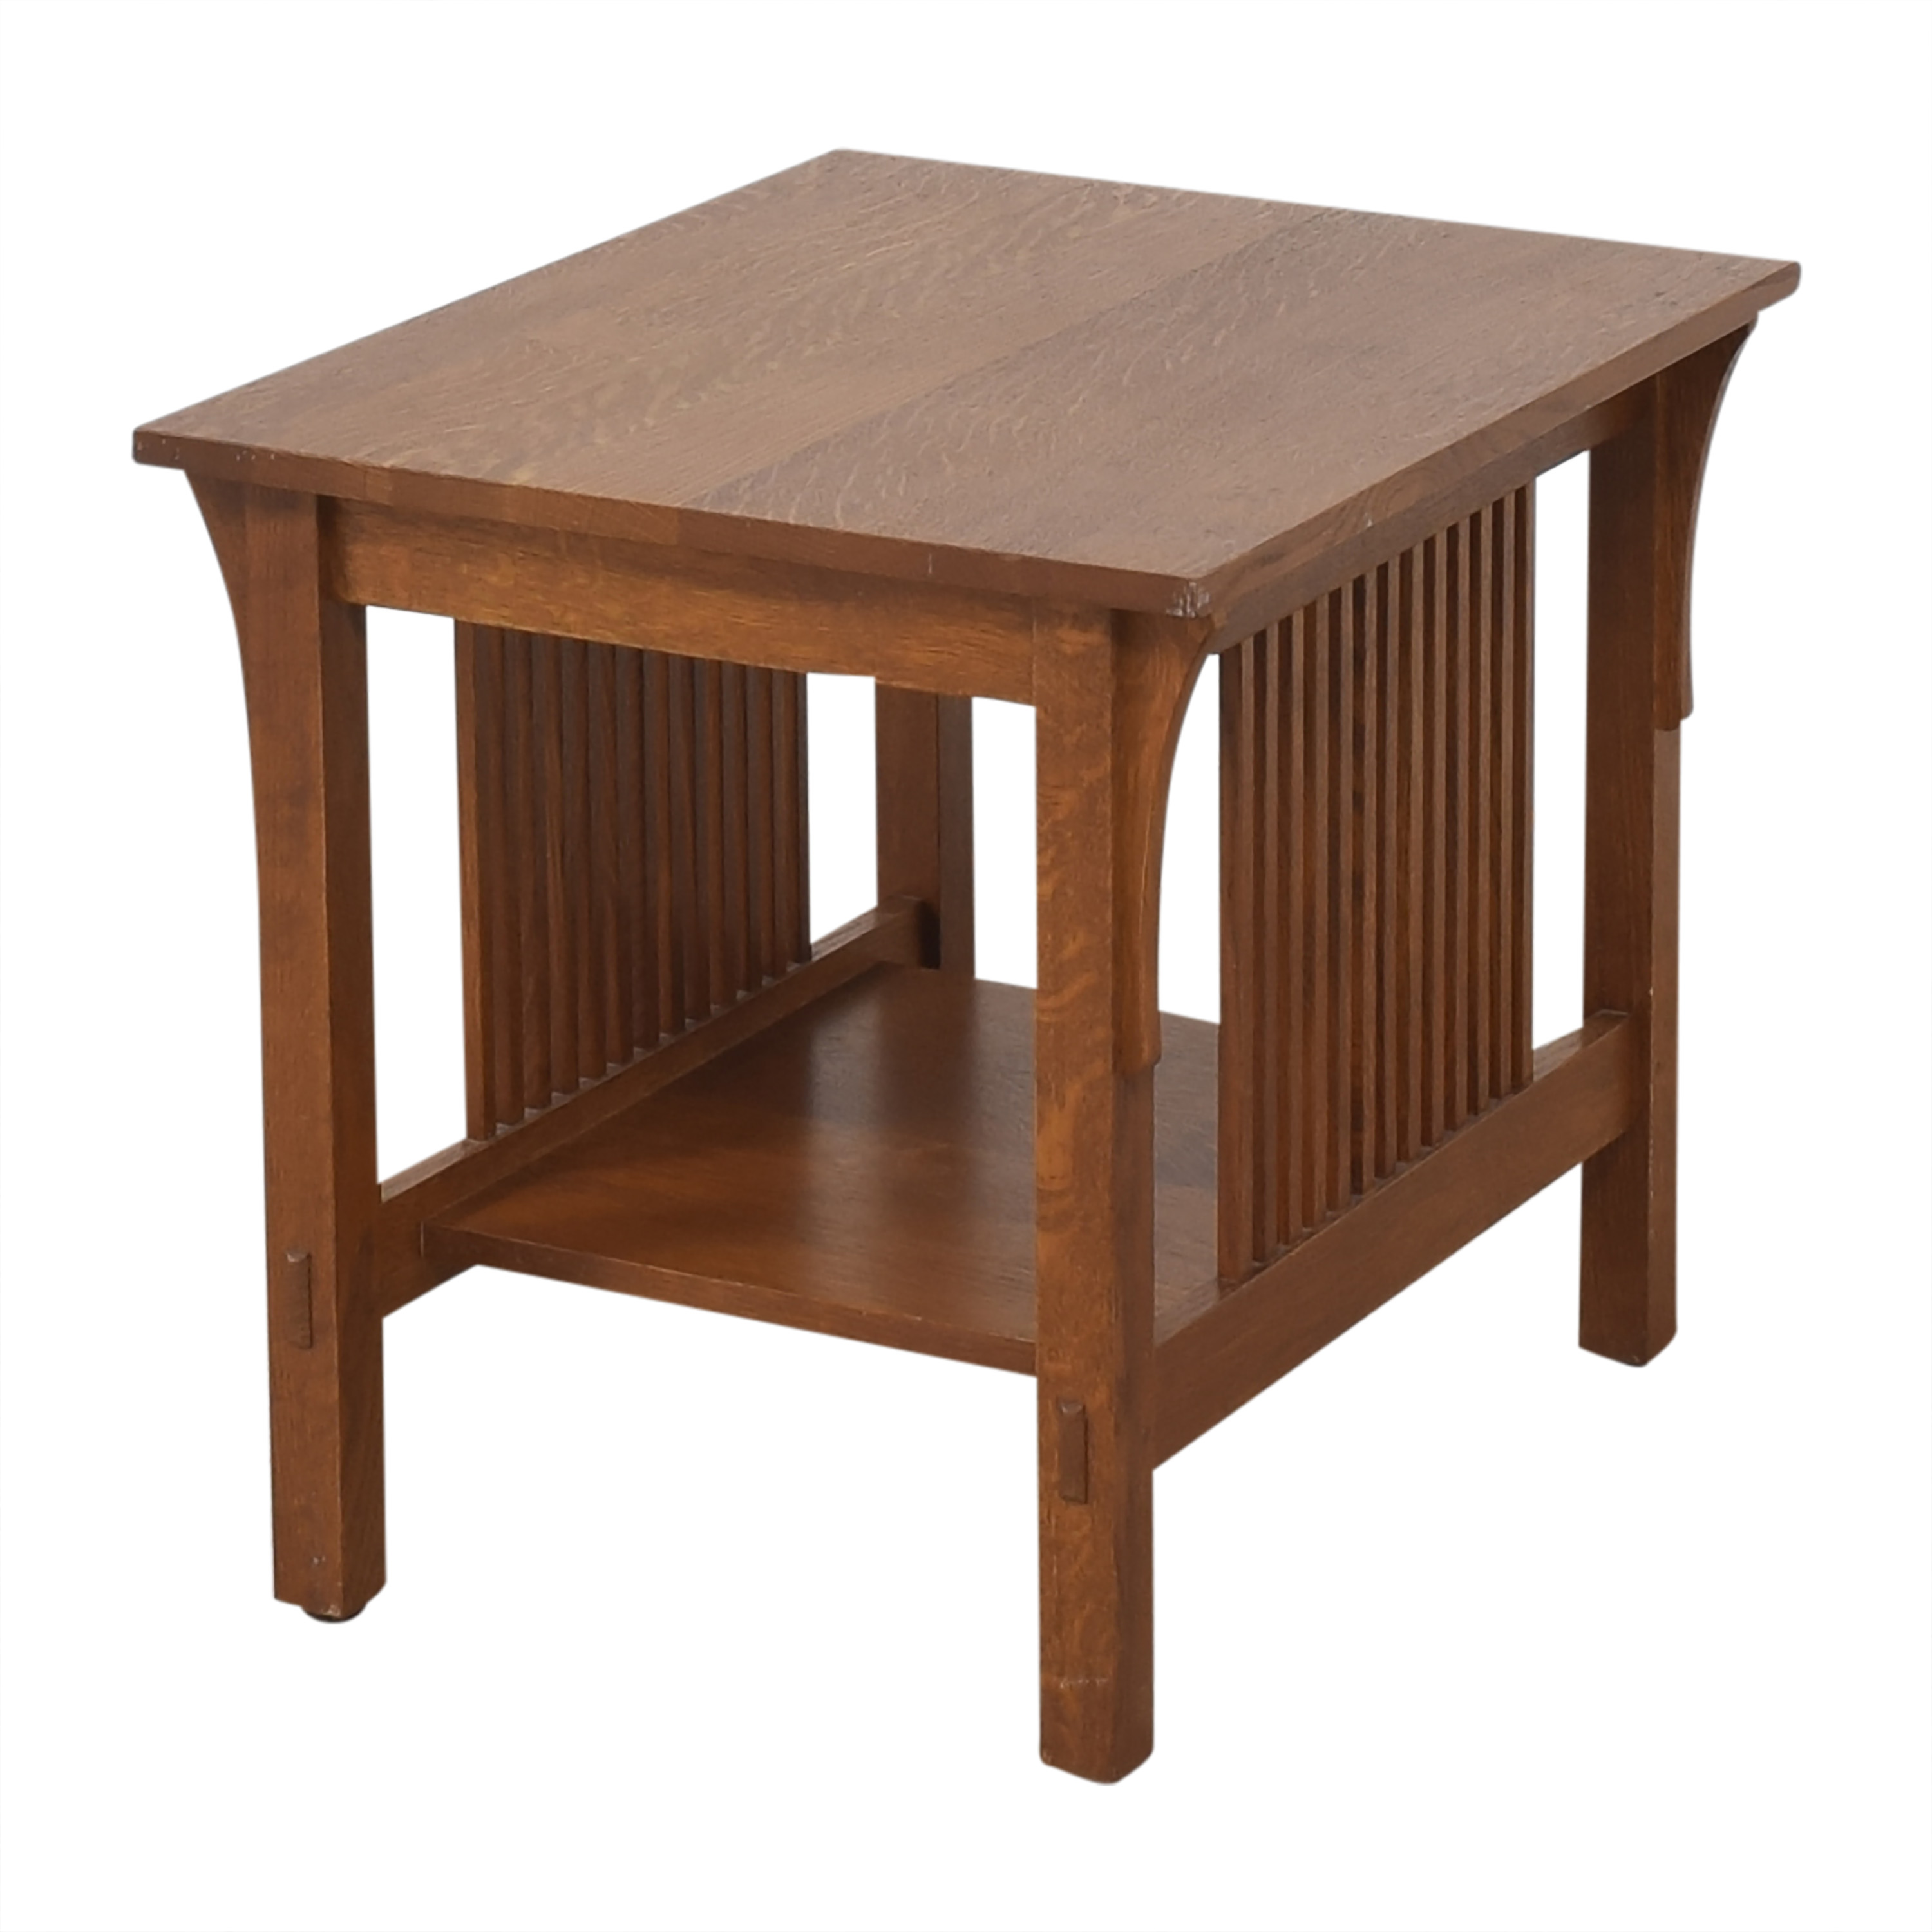 Stickley Furniture Stickley Furniture Mission-Style End Table price